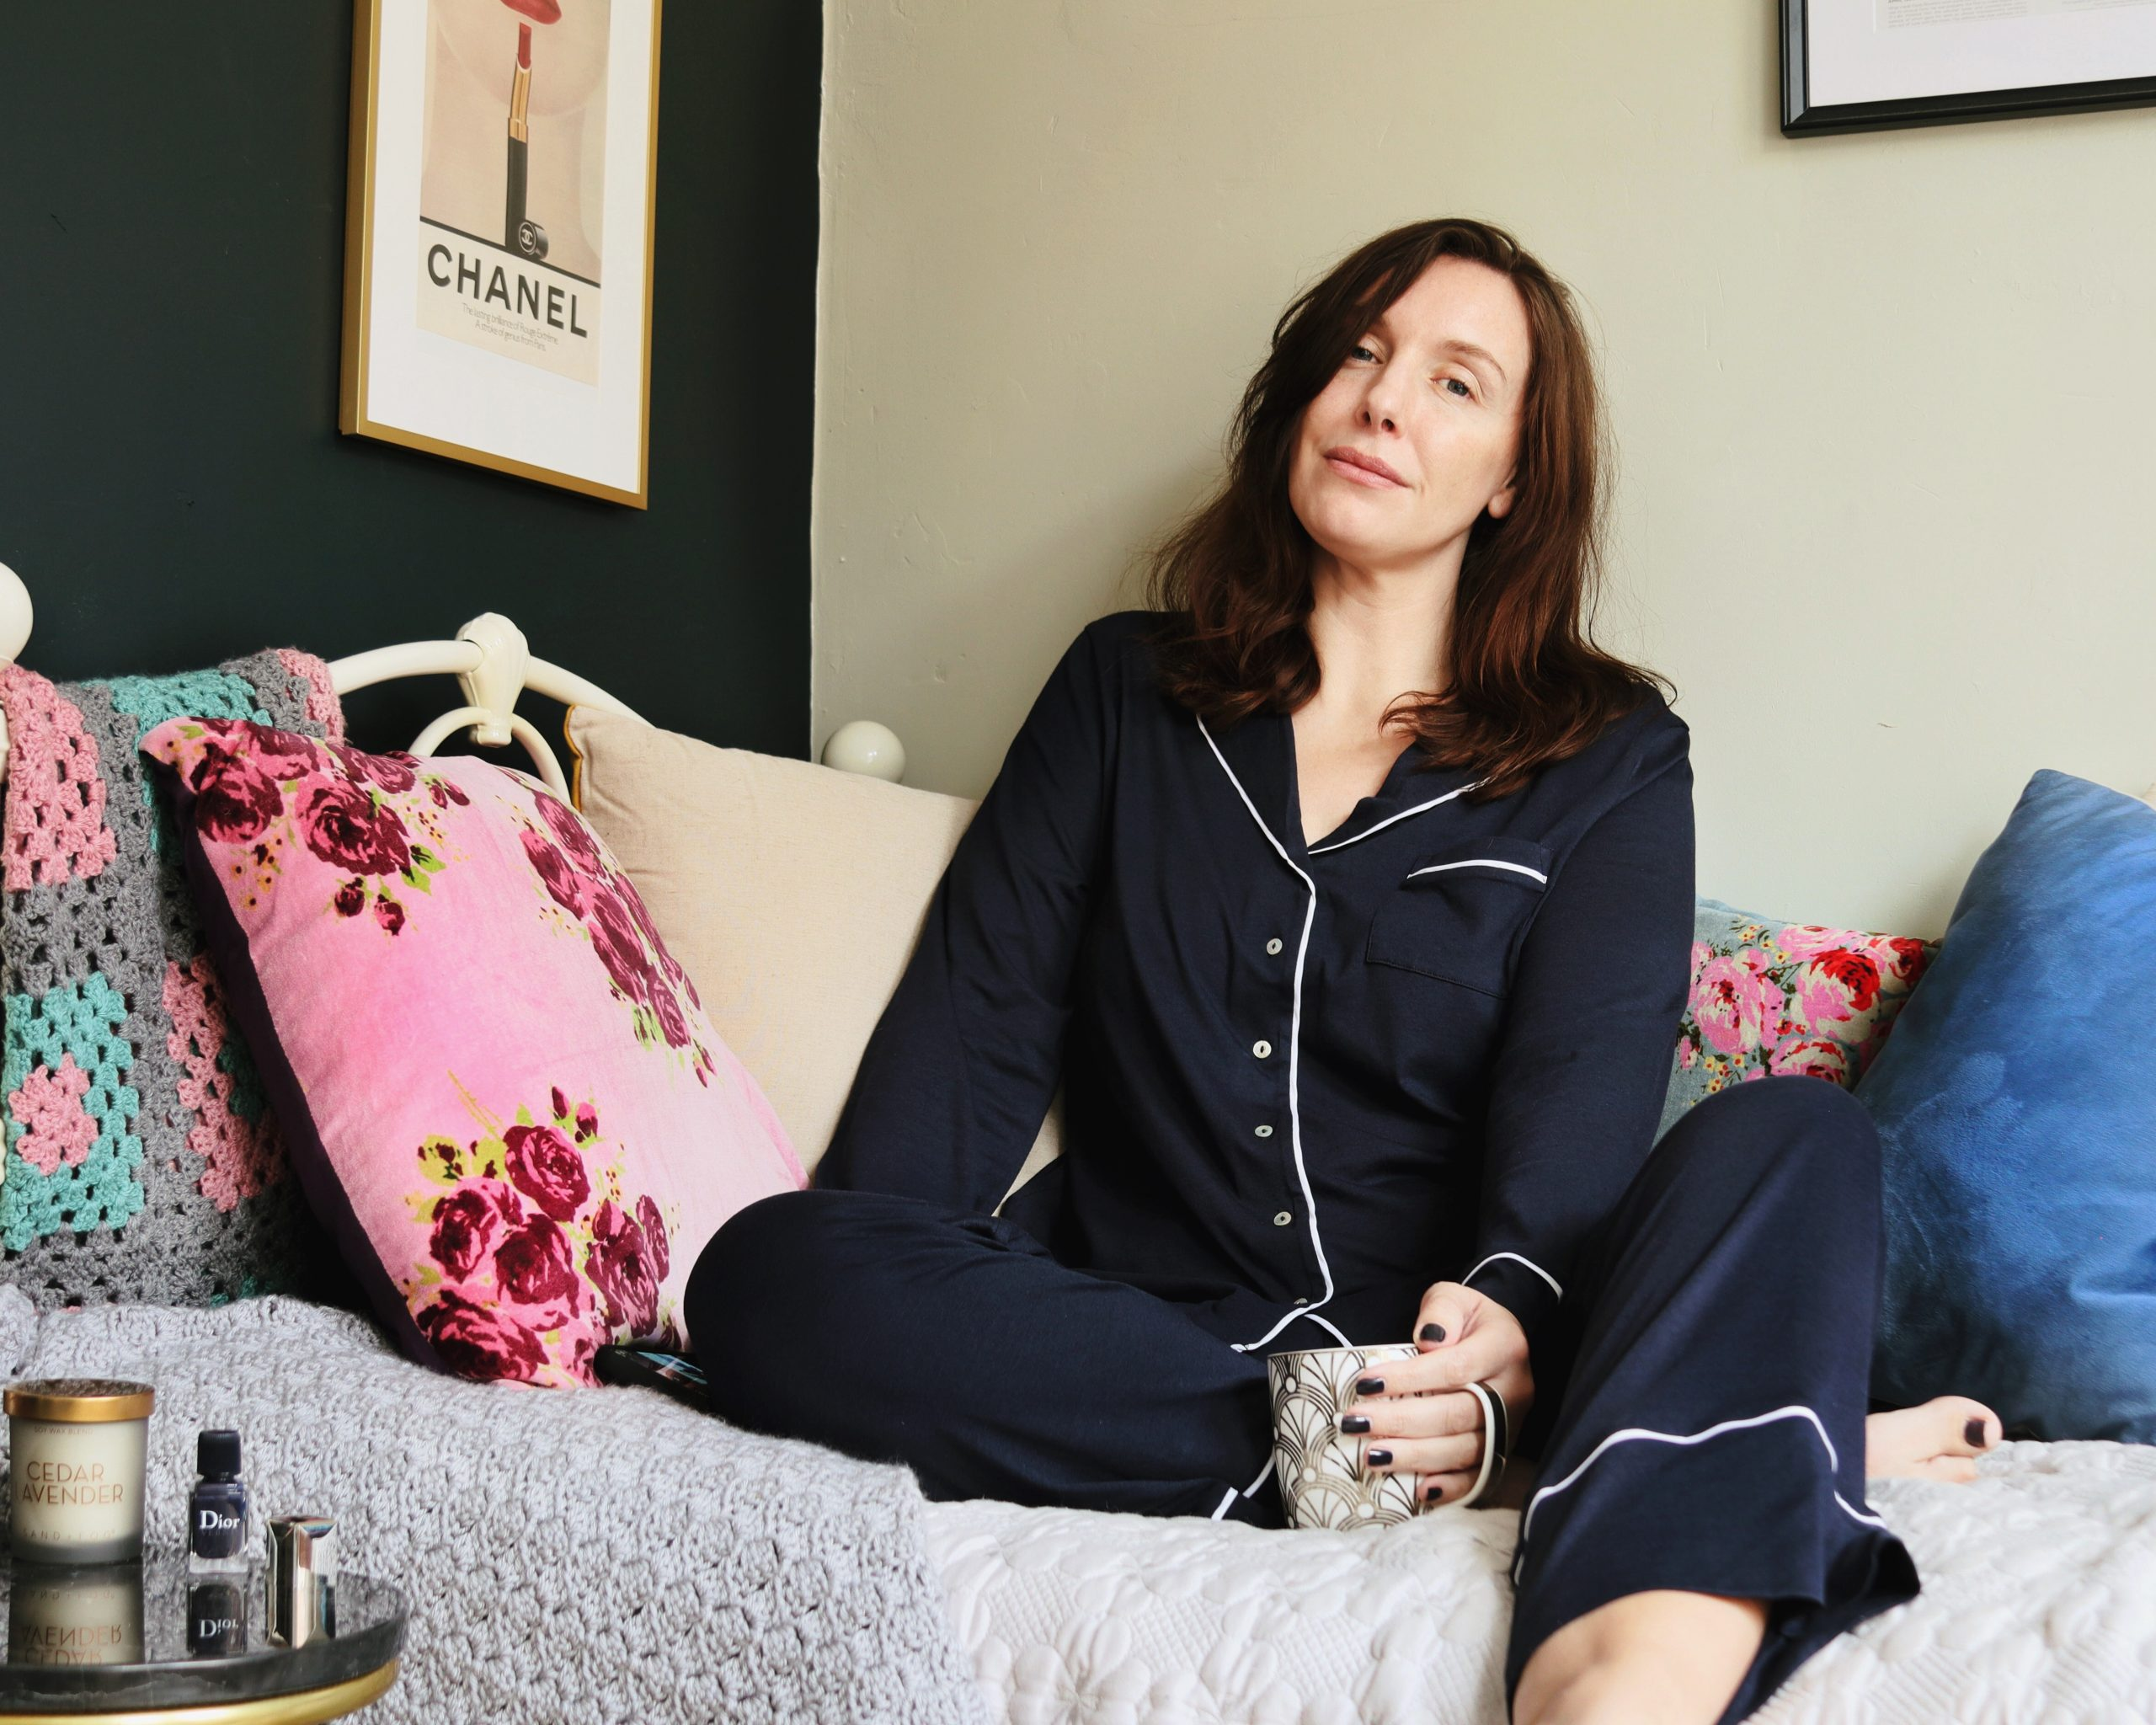 Amy is sat on her day bed, supported by cushions. She wears blue pj's and is looking knowingly towards the camera contemplating the thoughts being discussed in the post of medical neglect and gaslighting.